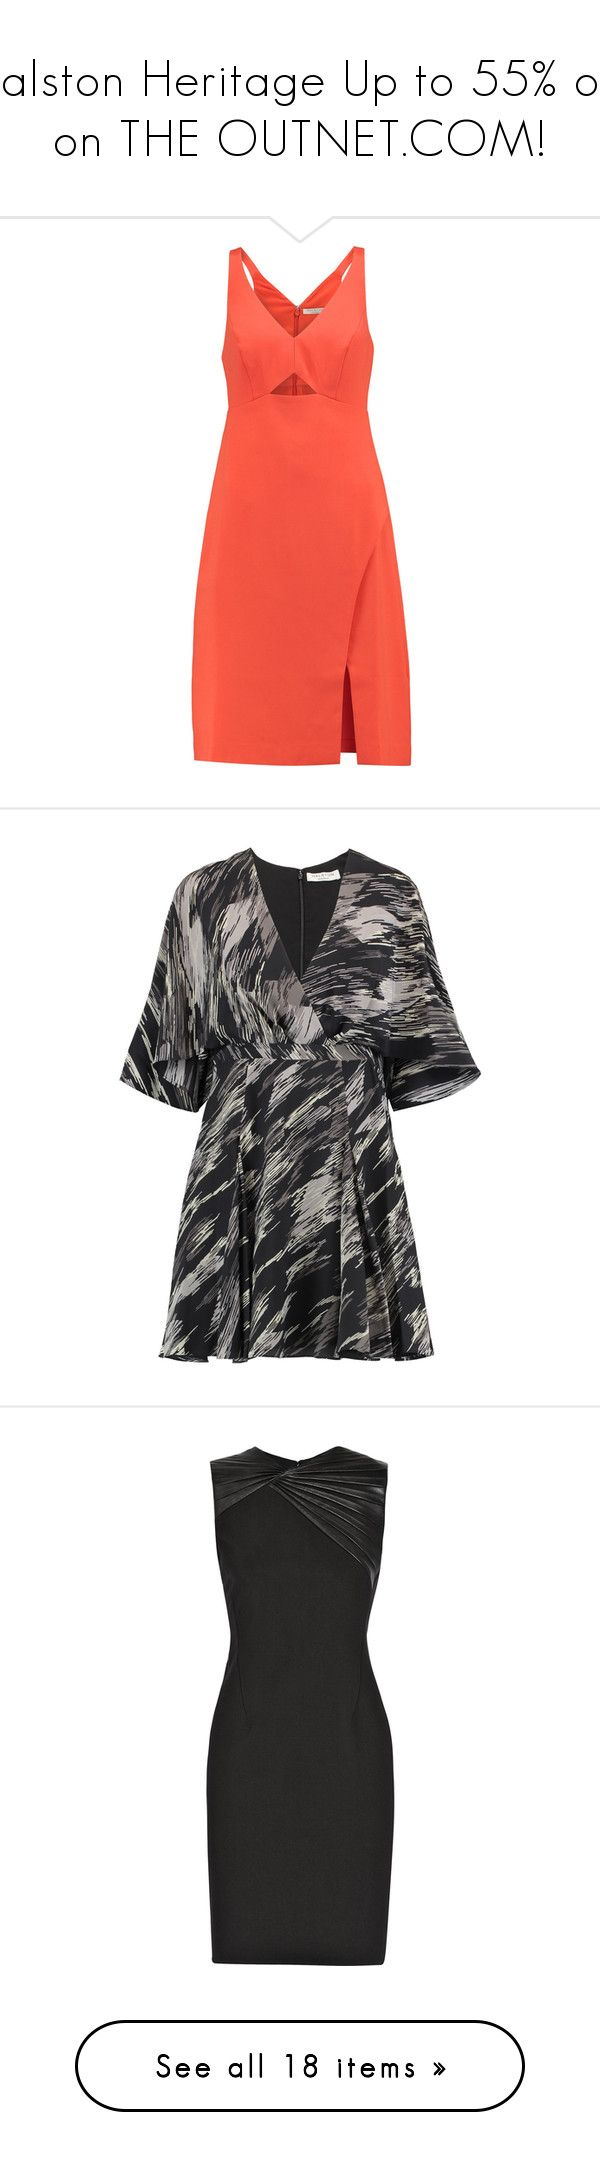 """""""Halston Heritage Up to 55% off on THE OUTNET.COM!"""" by theoutnet ❤ liked on Polyvore featuring dresses, bright orange, red cut-out dresses, colorful dresses, multi color sequin dress, red sequin dress, orange wrap dress, black, sleeved dresses and sequin wrap dress"""